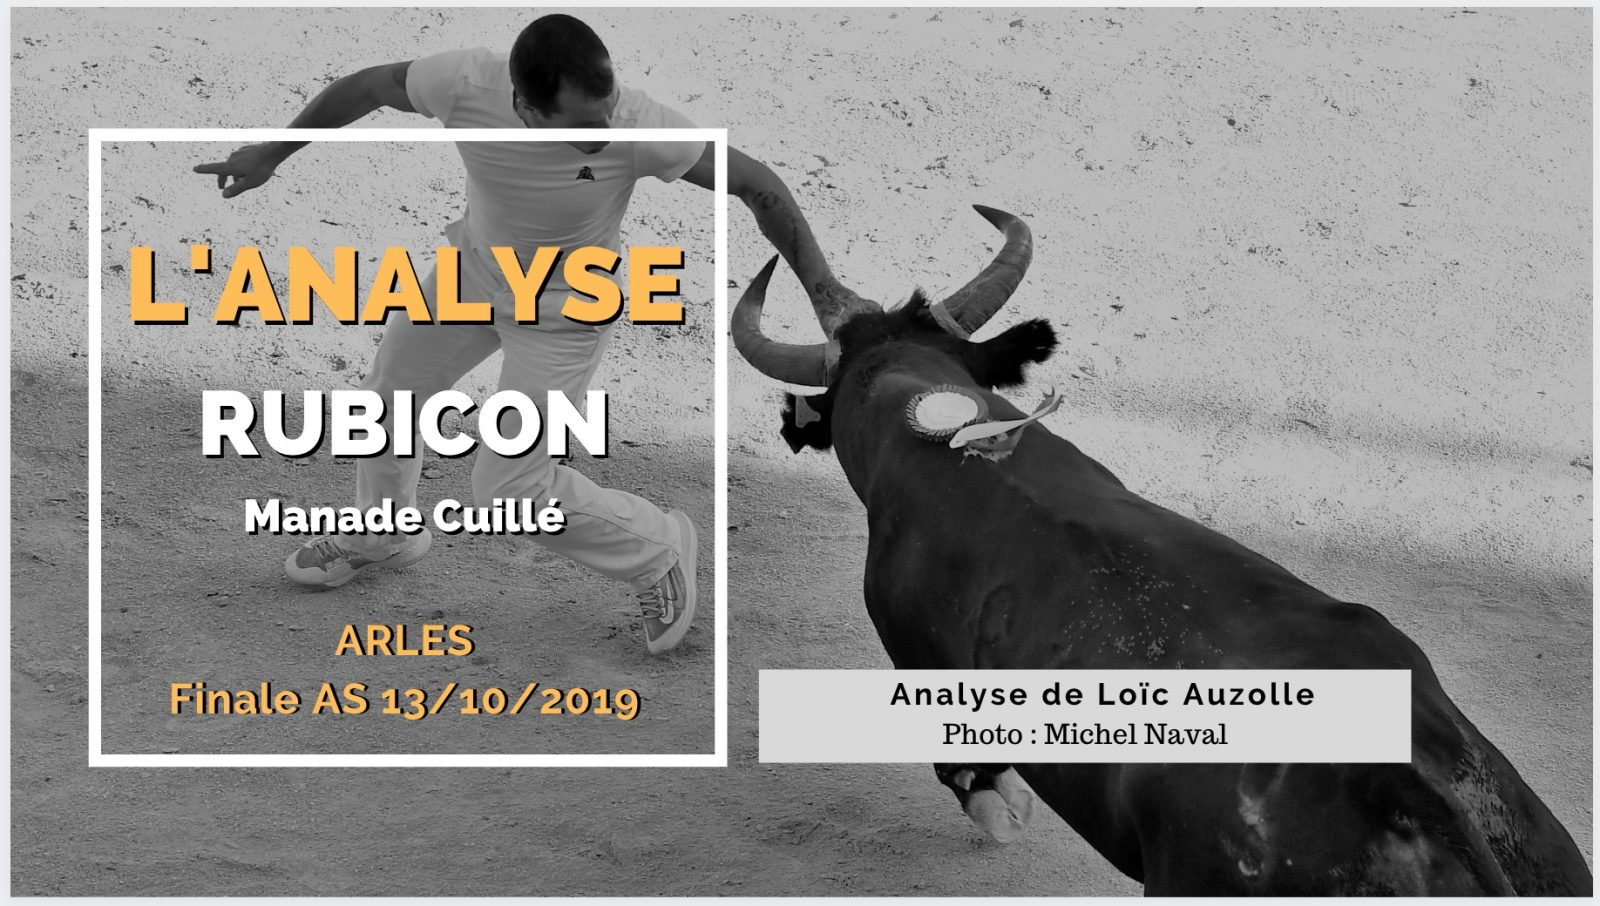 L'ANALYSE – Rubicon (Cuillé) – Finale AS Arles 13/10/2019